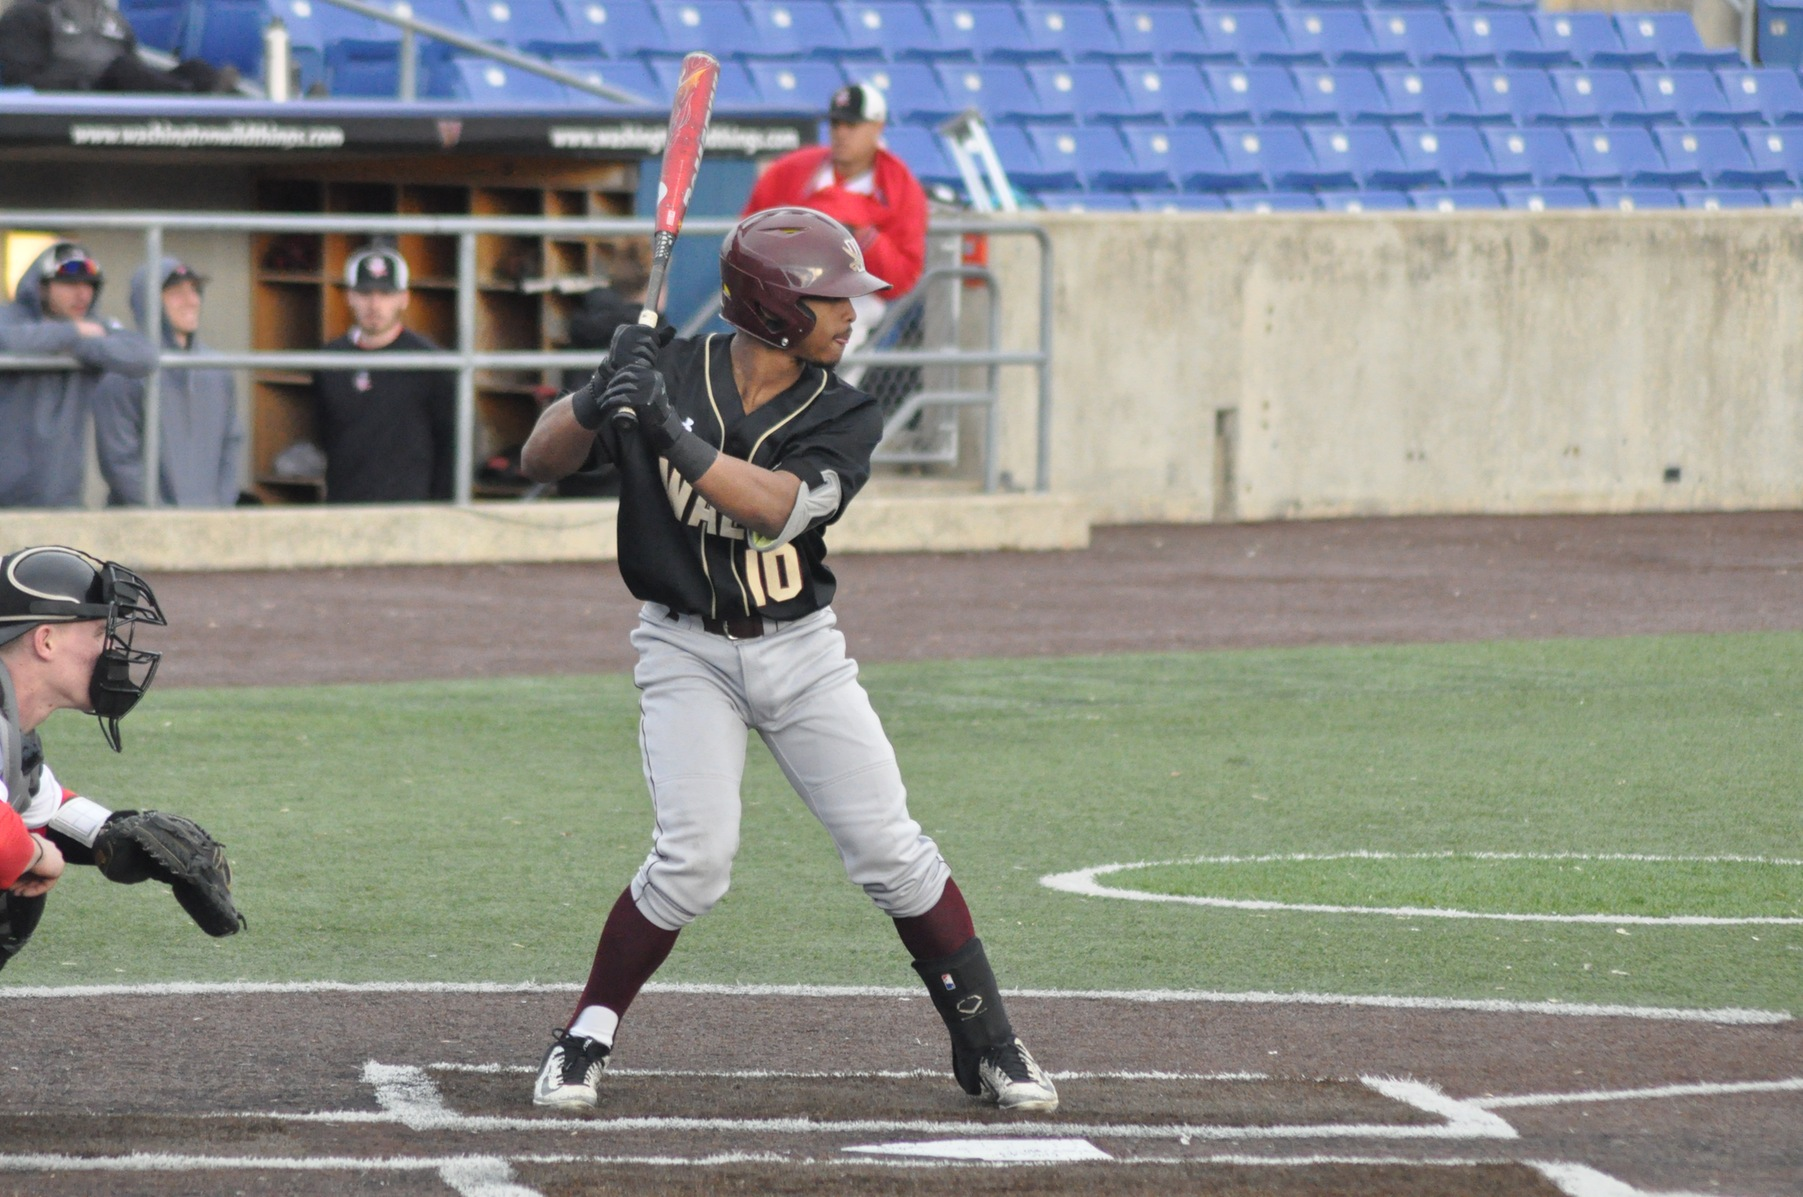 Cavs Sweep Doubleheader, Take Series From Findlay